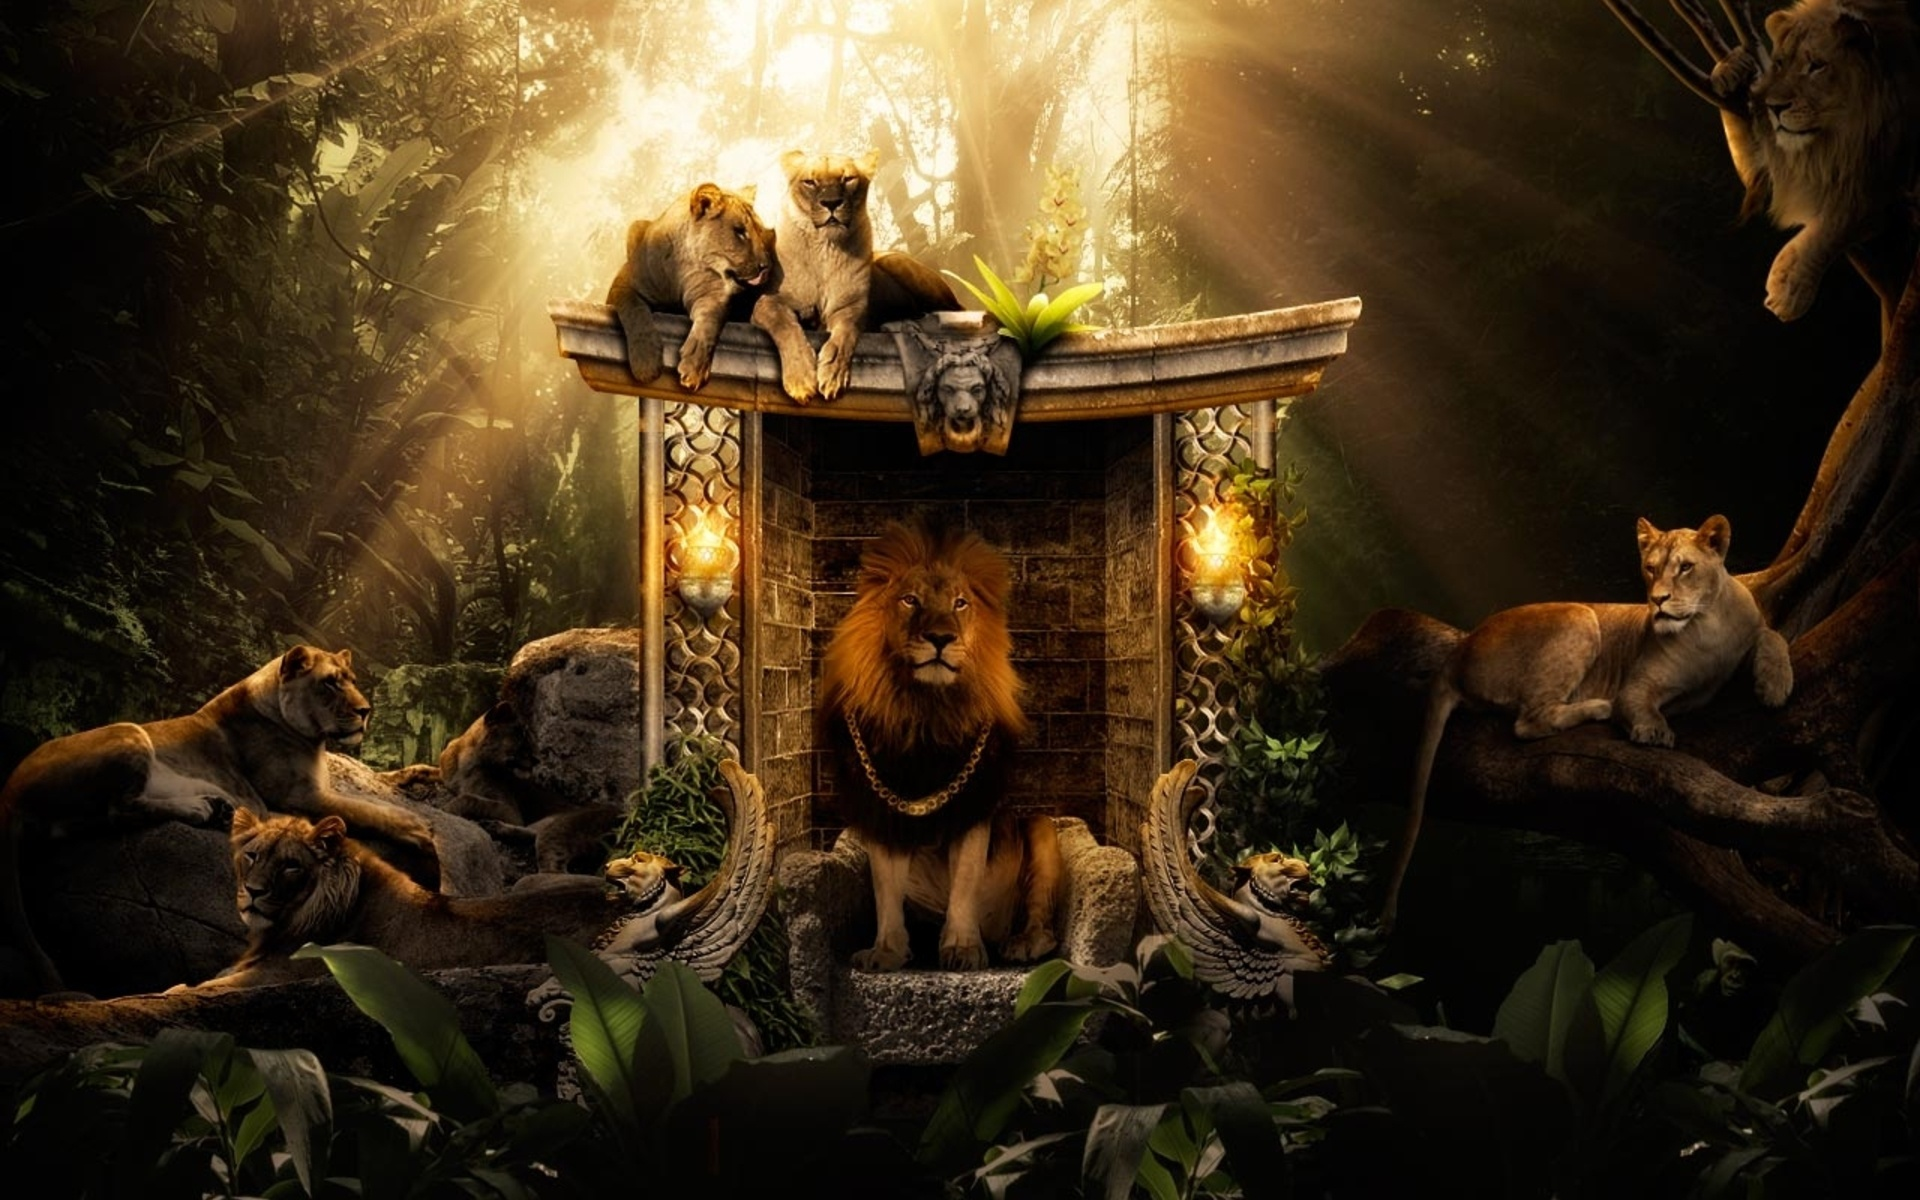 Jungle Wallpapers HD A22